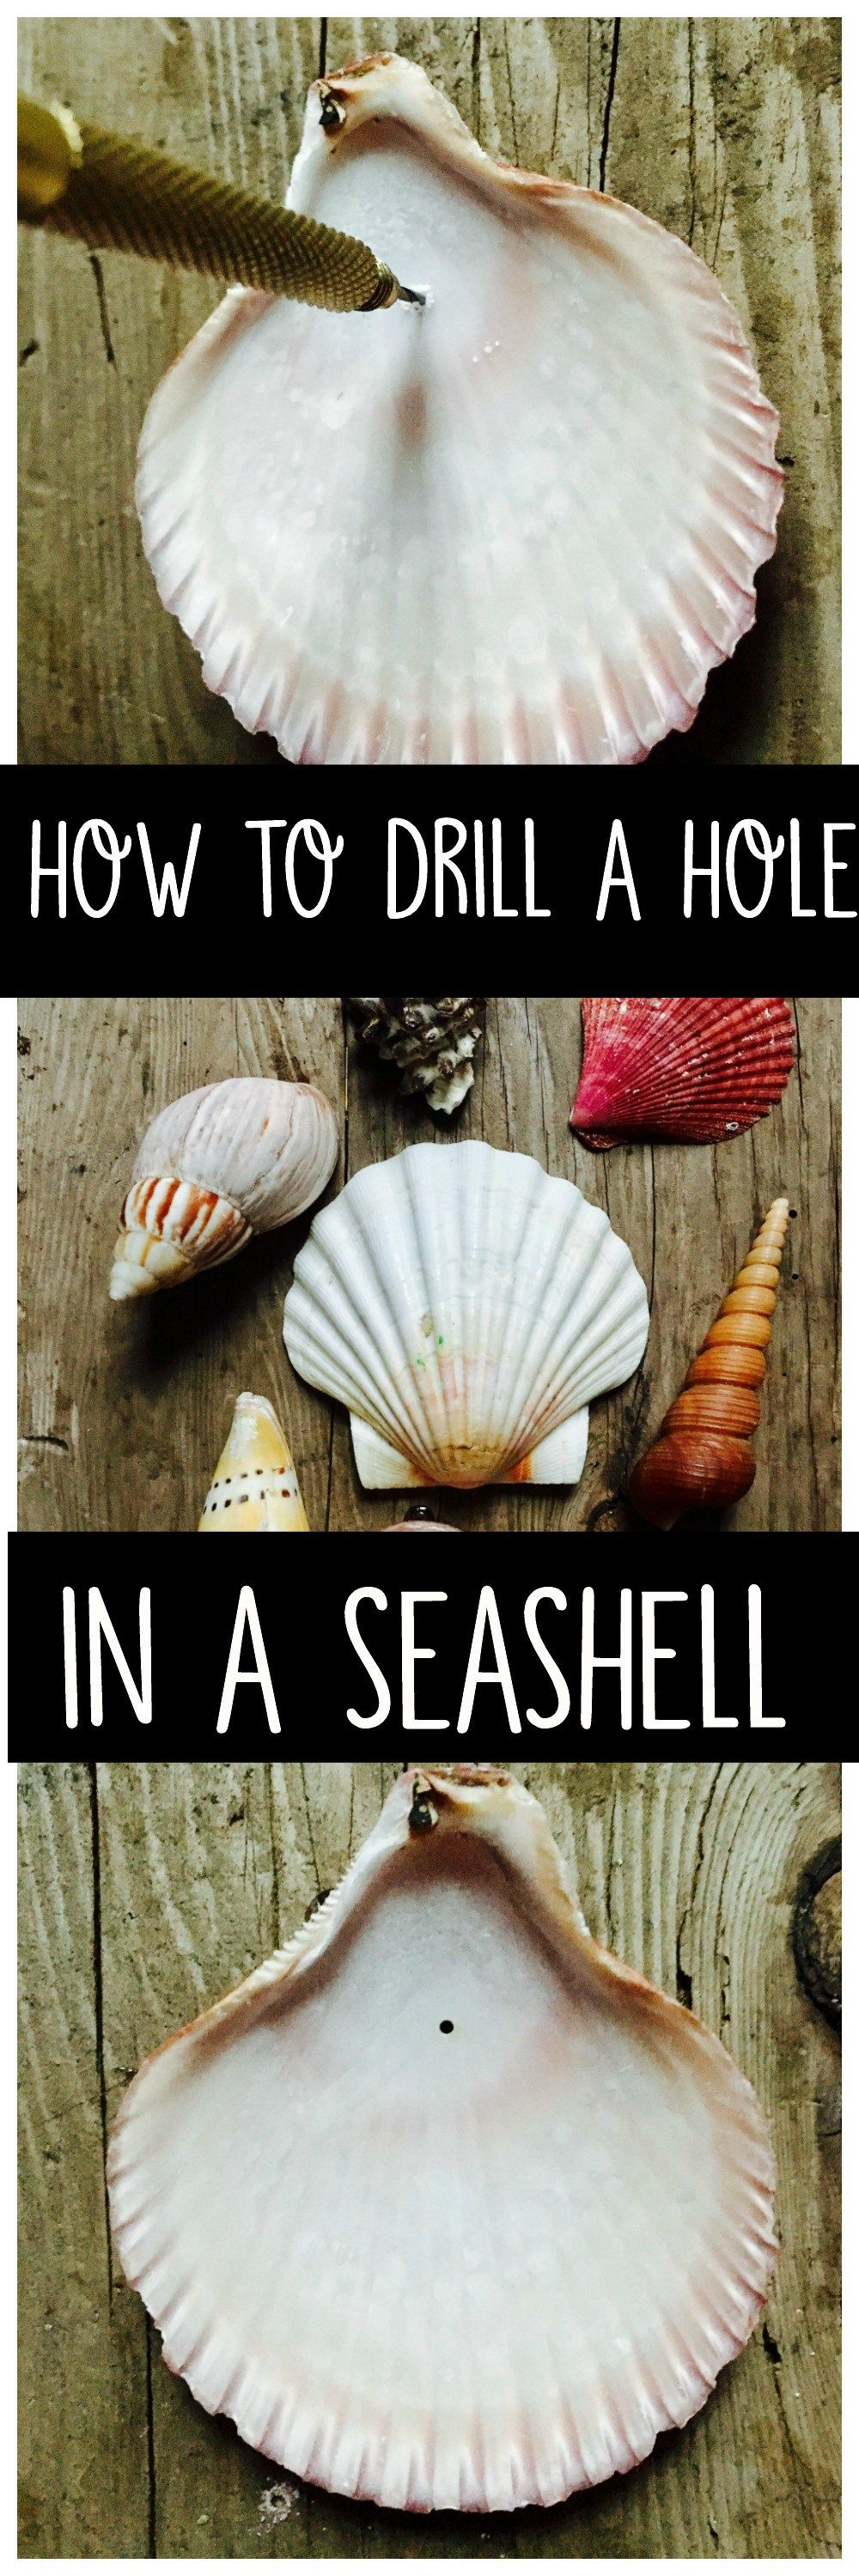 Learn how to drill a hole in a seashell with a simple tool you can purchase from the craft or hardware store. Make crafts or